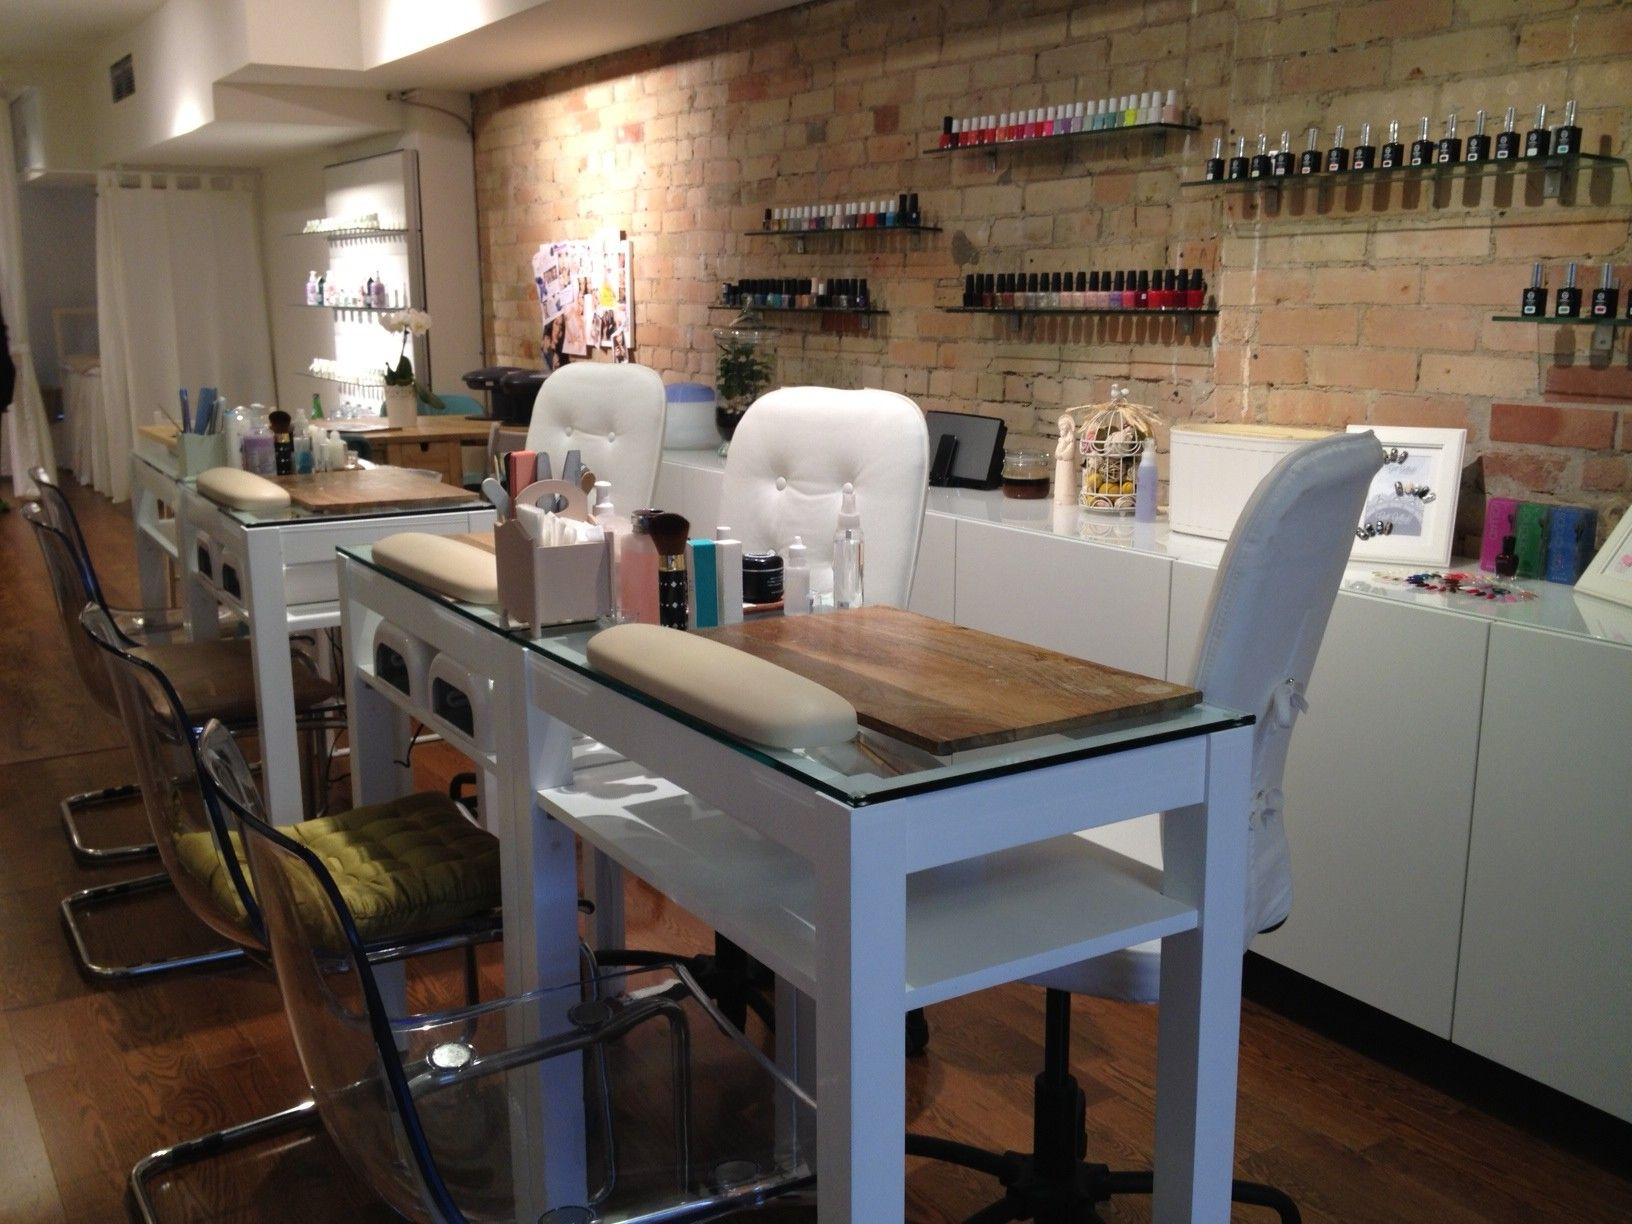 stephanie fusco get gelled yonge wellesley nail bar interior salon pinterest bar search and modern nails - Salon Modern Evintage